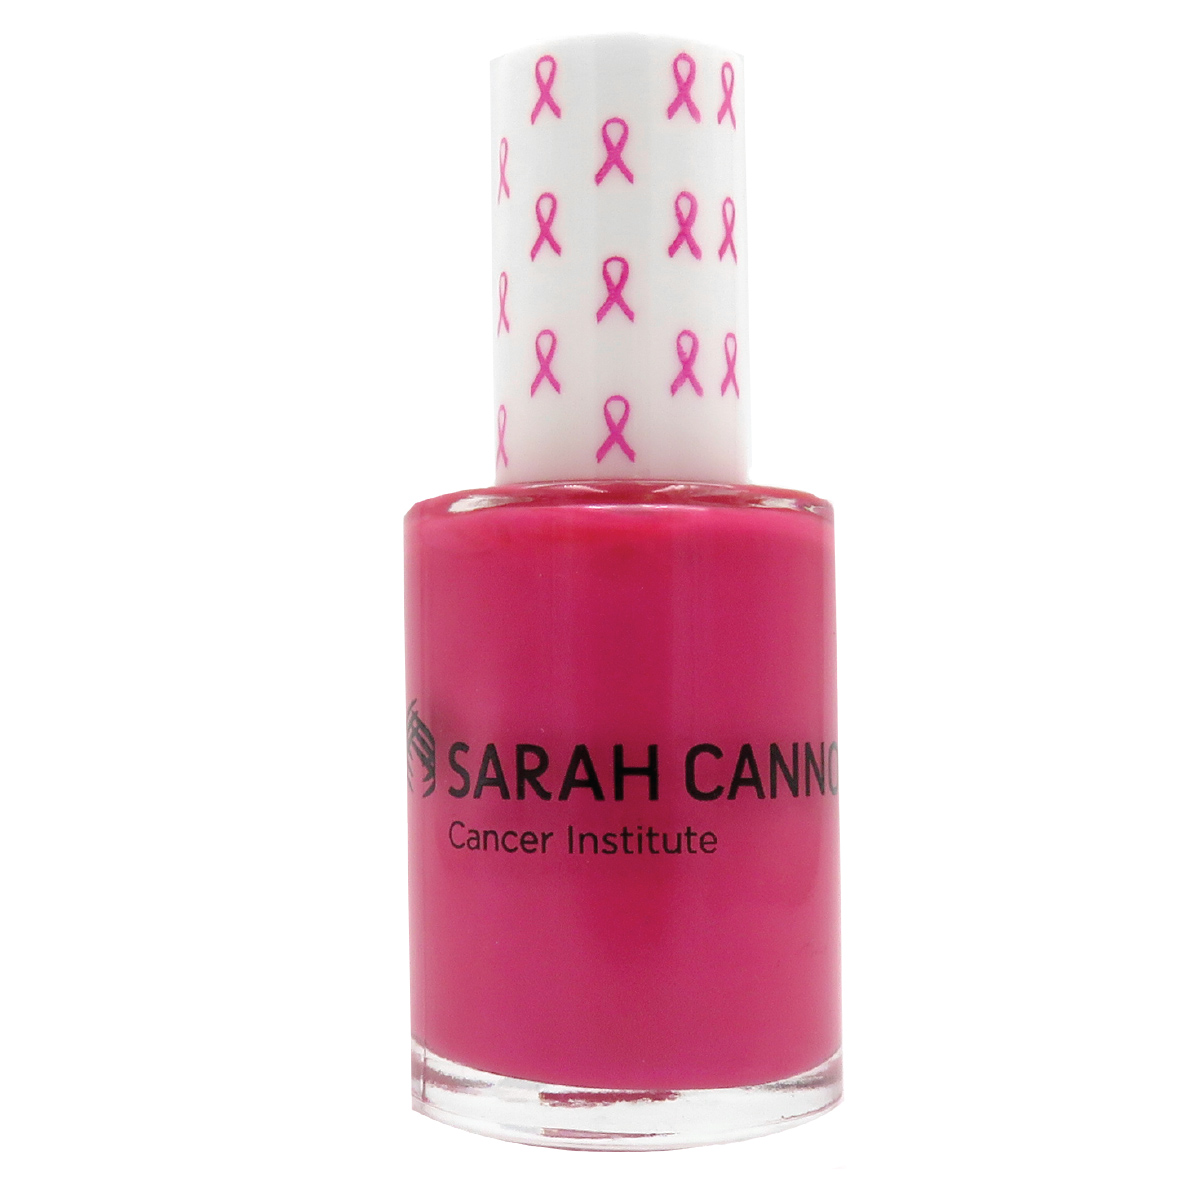 PL – 112, Full Size Round Nail Polish with Pink Ribbon Cap